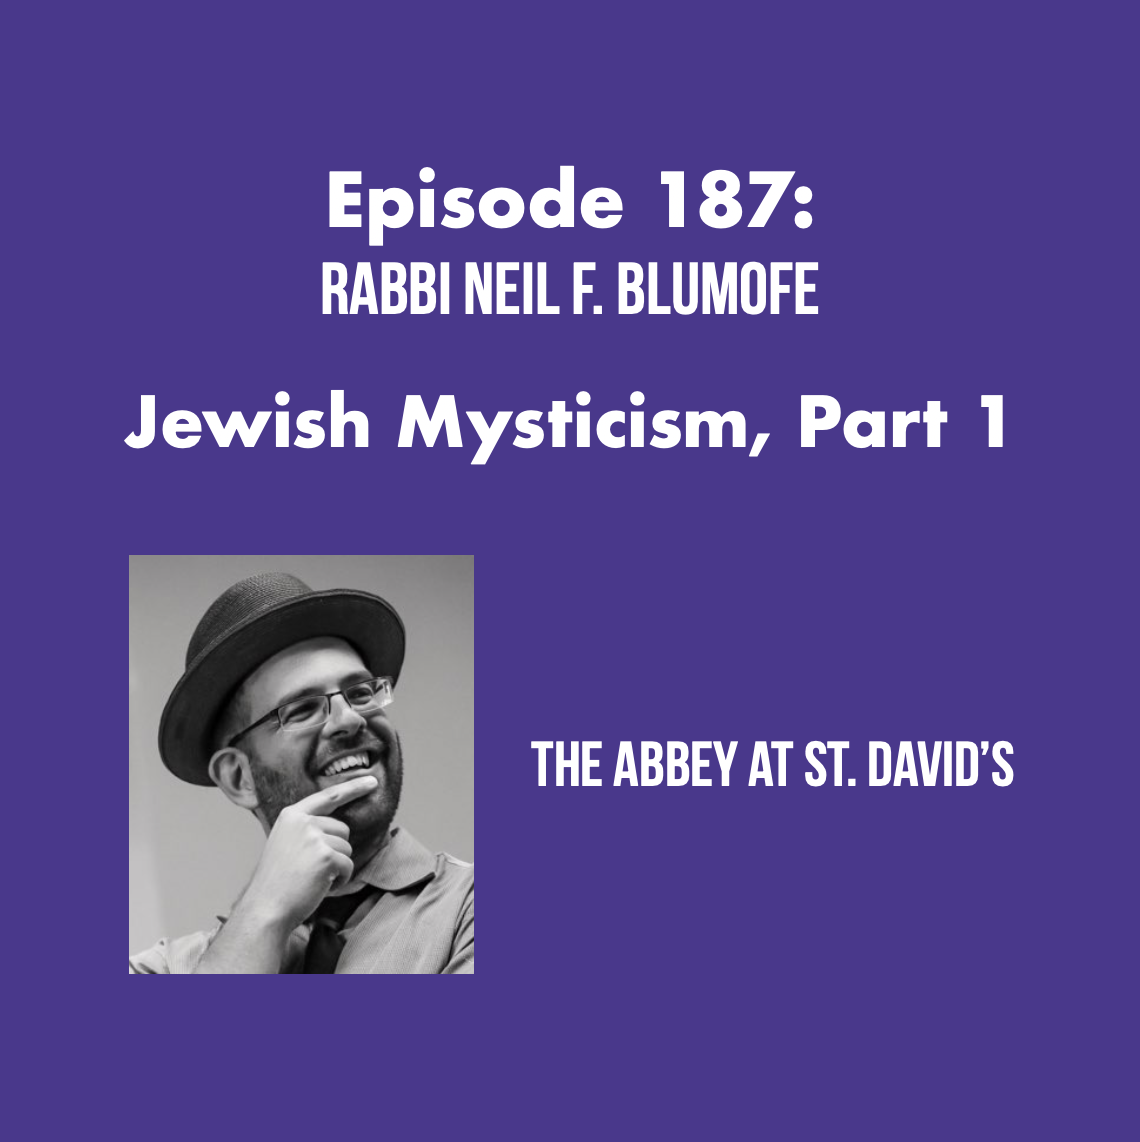 Episode 187: Jewish Mysticism, Part 1 with Rabbi Neil F. Blumofe